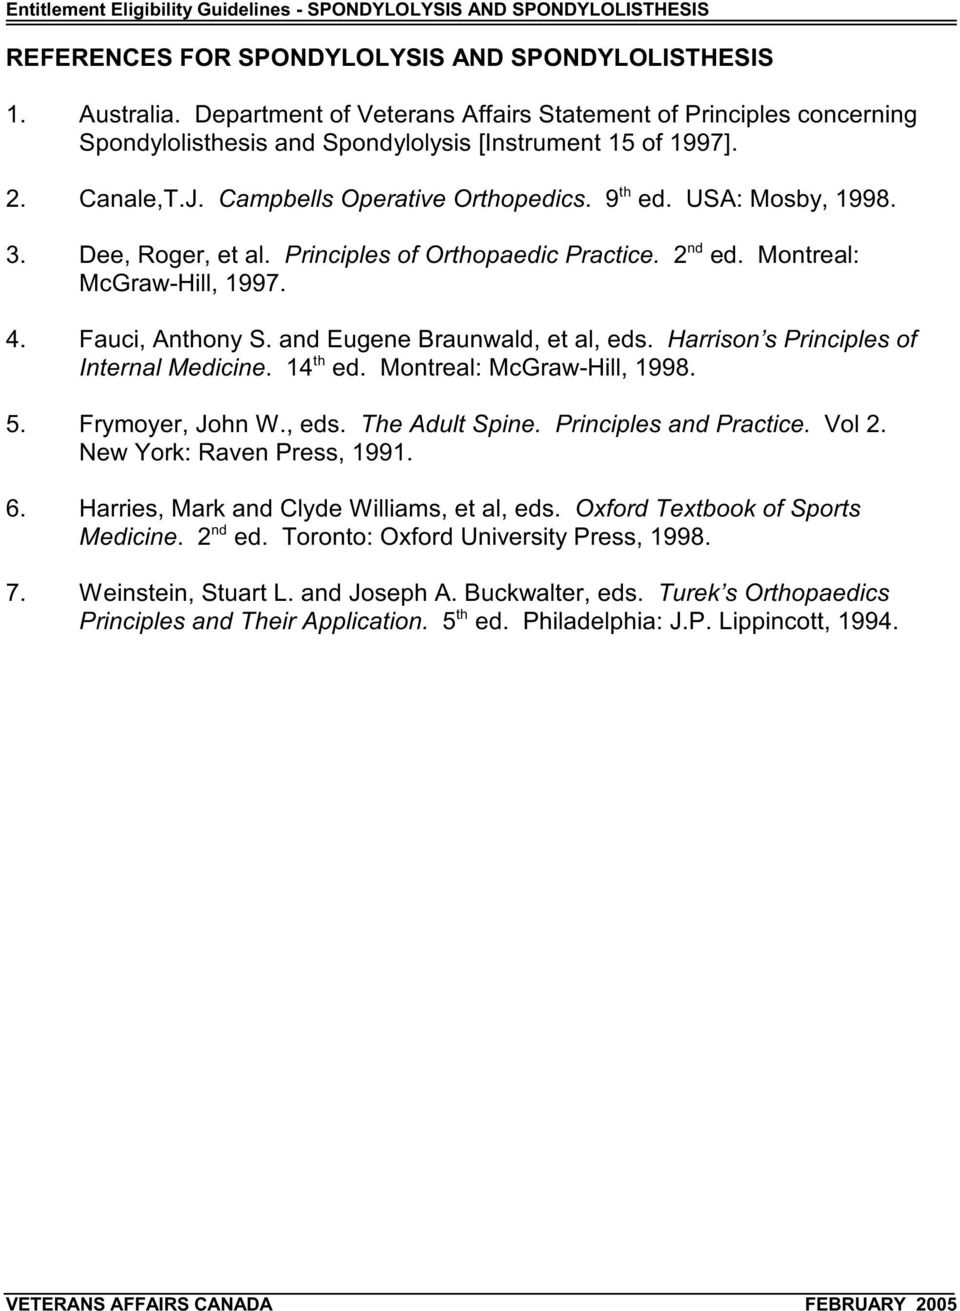 USA: Mosby, 1998. nd 3. Dee, Roger, et al. Principles of Orthopaedic Practice. 2 ed. Montreal: McGraw-Hill, 1997. 4. Fauci, Anthony S. and Eugene Braunwald, et al, eds.